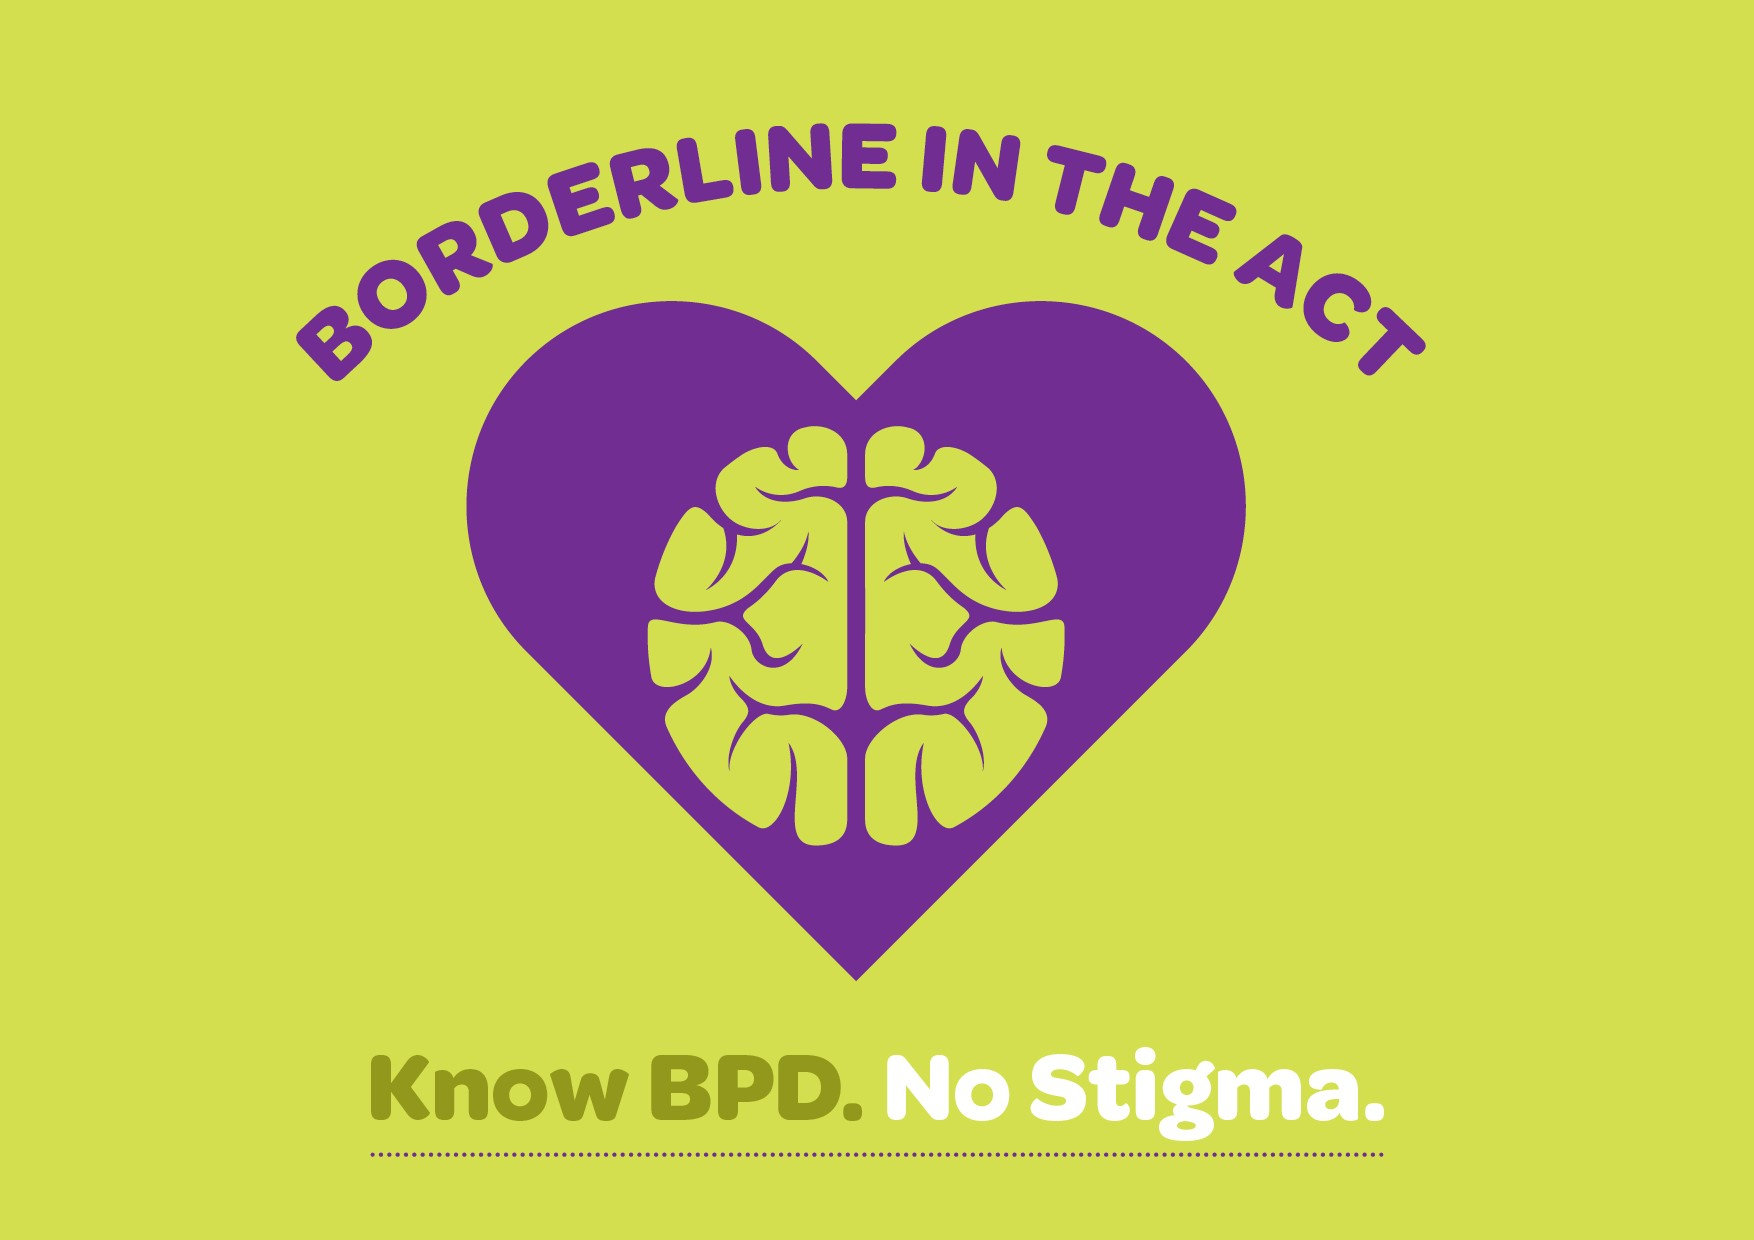 Partner with BPD - Borderline in the ACT